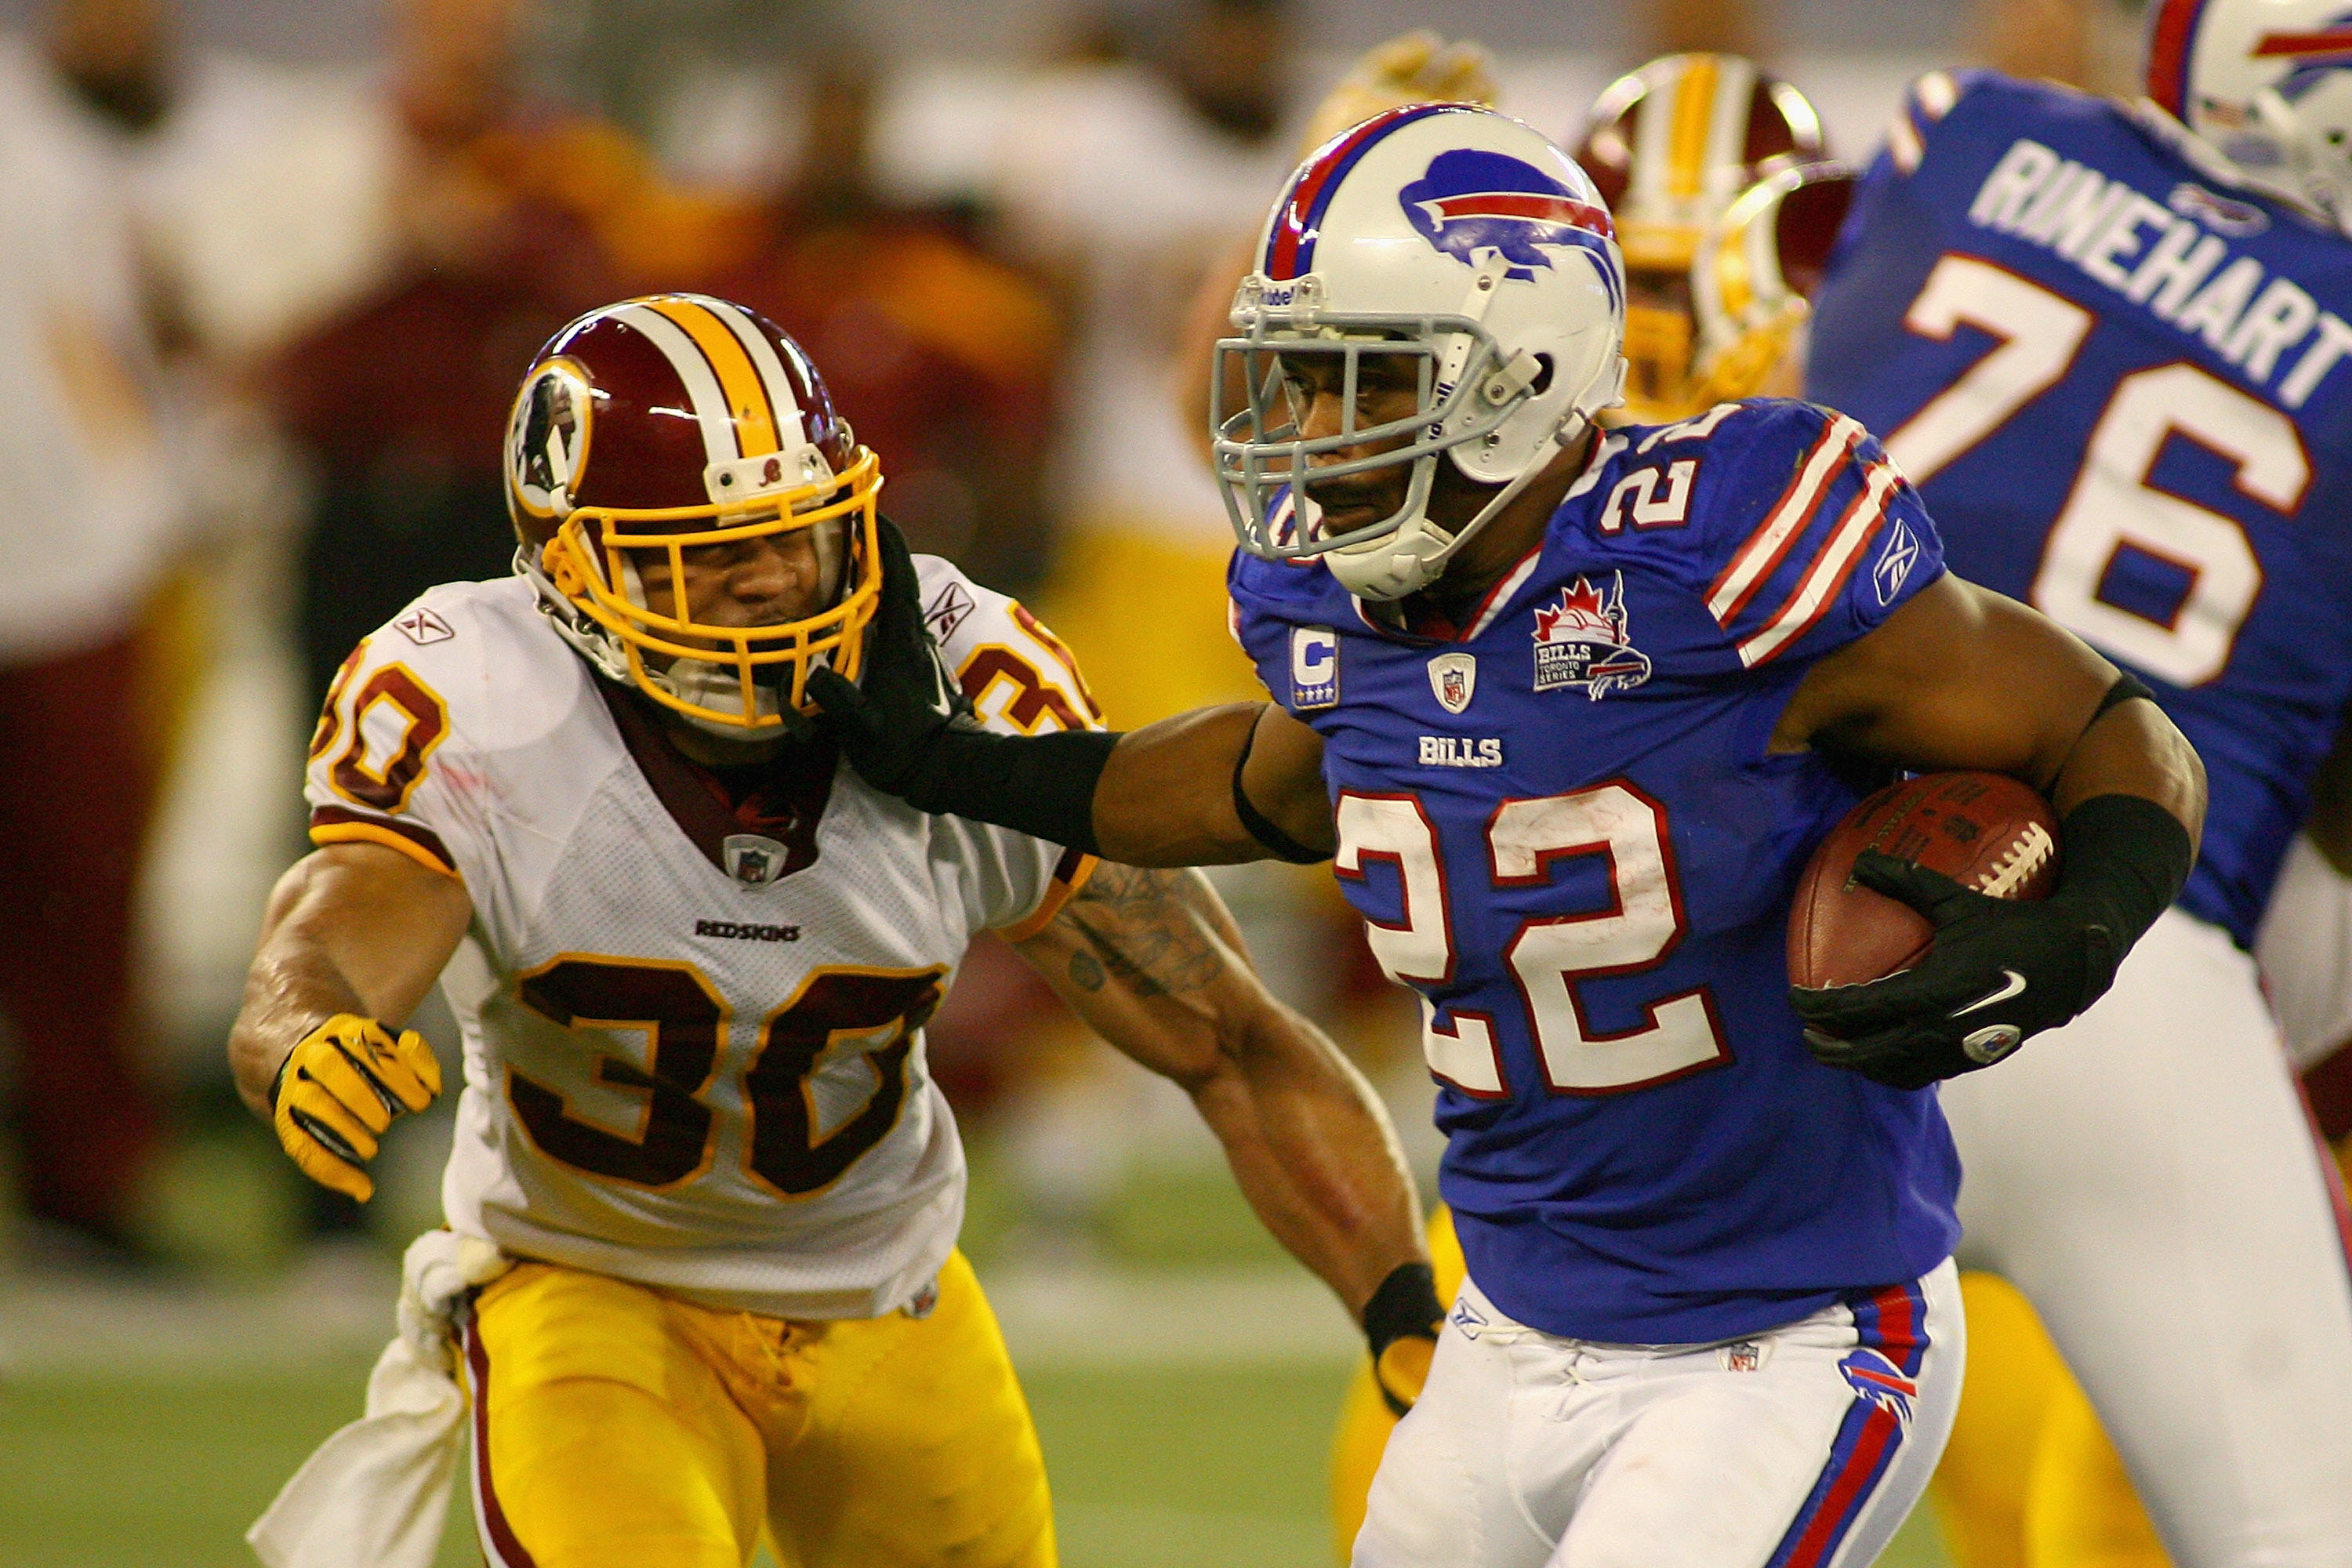 Fitzpatrick leads Buffalo Bills past Washington Redskins at Rogers